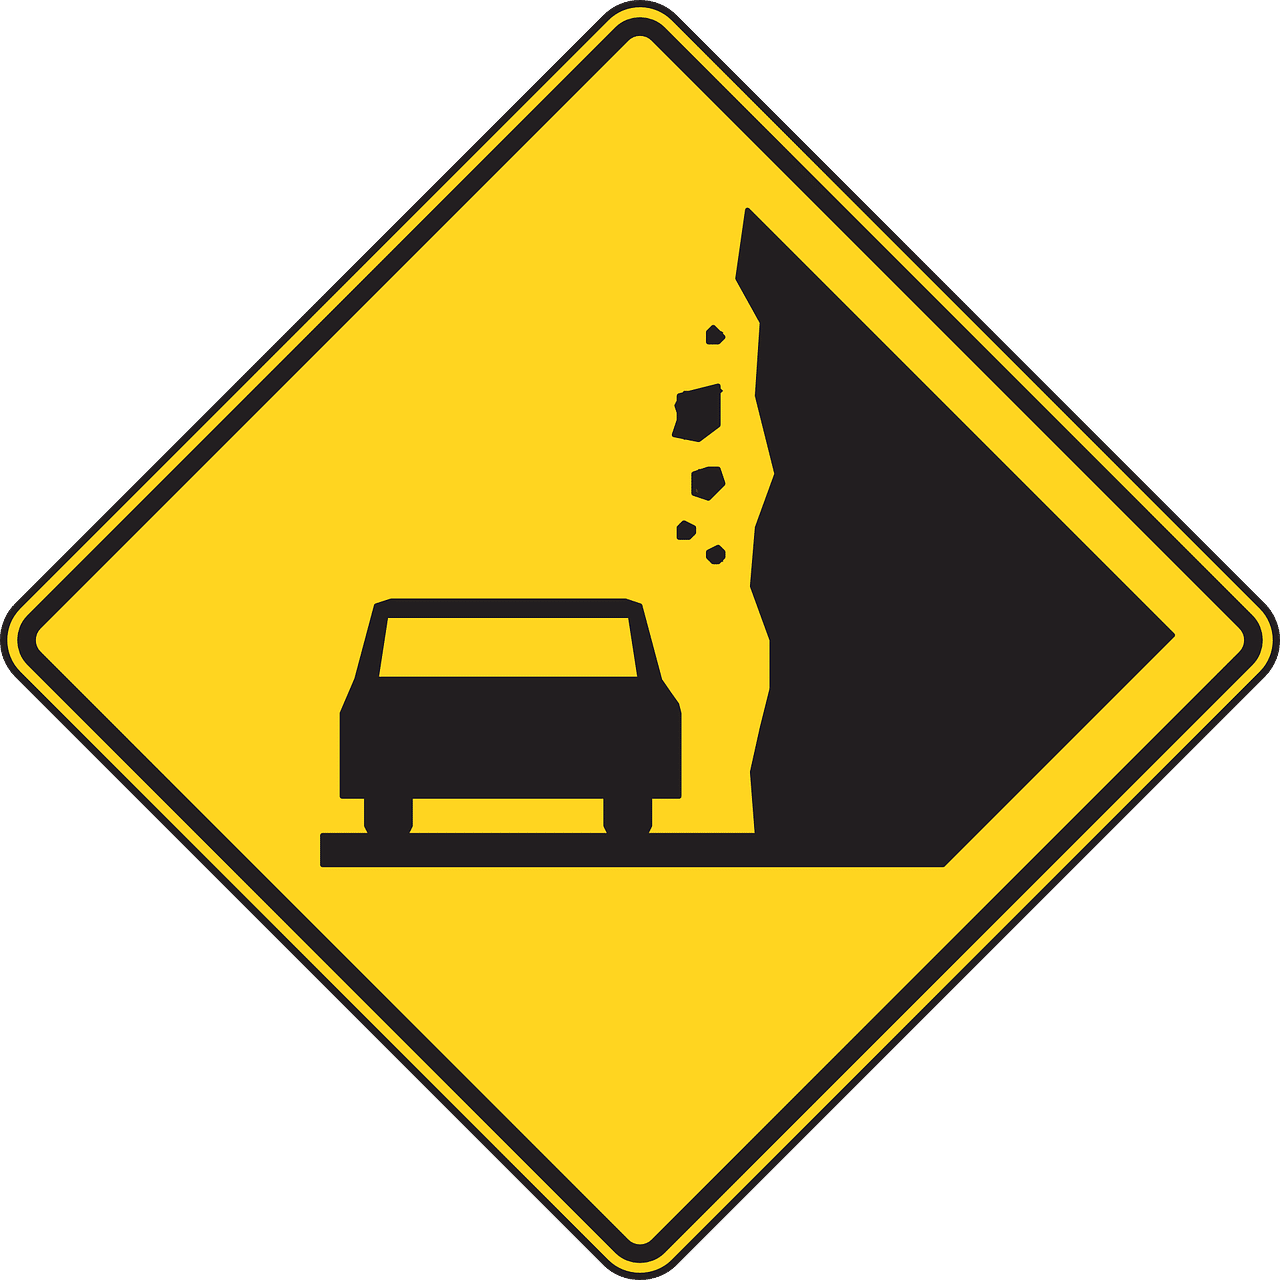 falling-cliff-traffic-sign